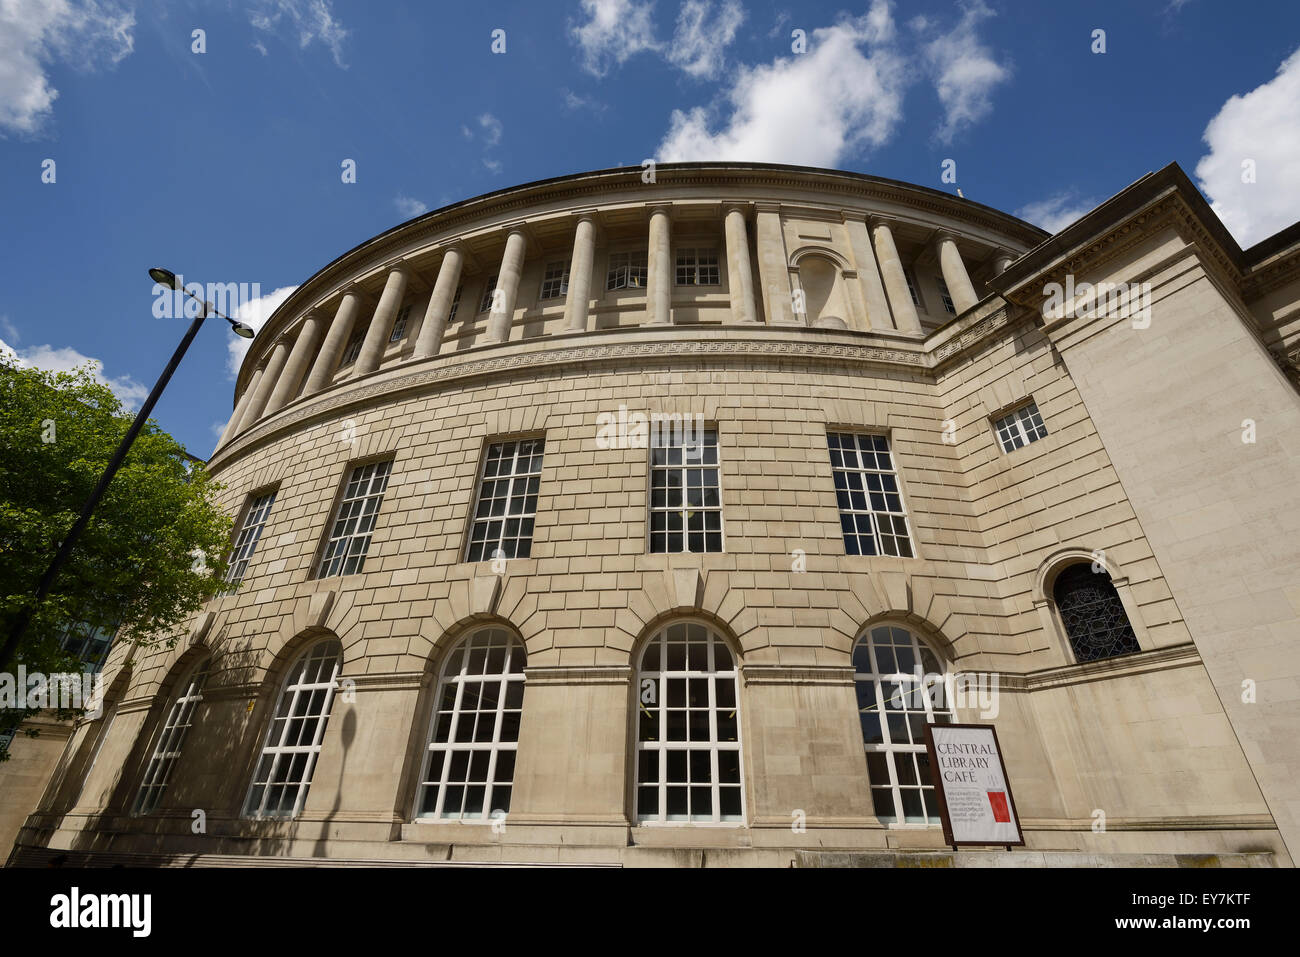 The exterior of Manchester Central Library in Manchester city centre UK - Stock Image